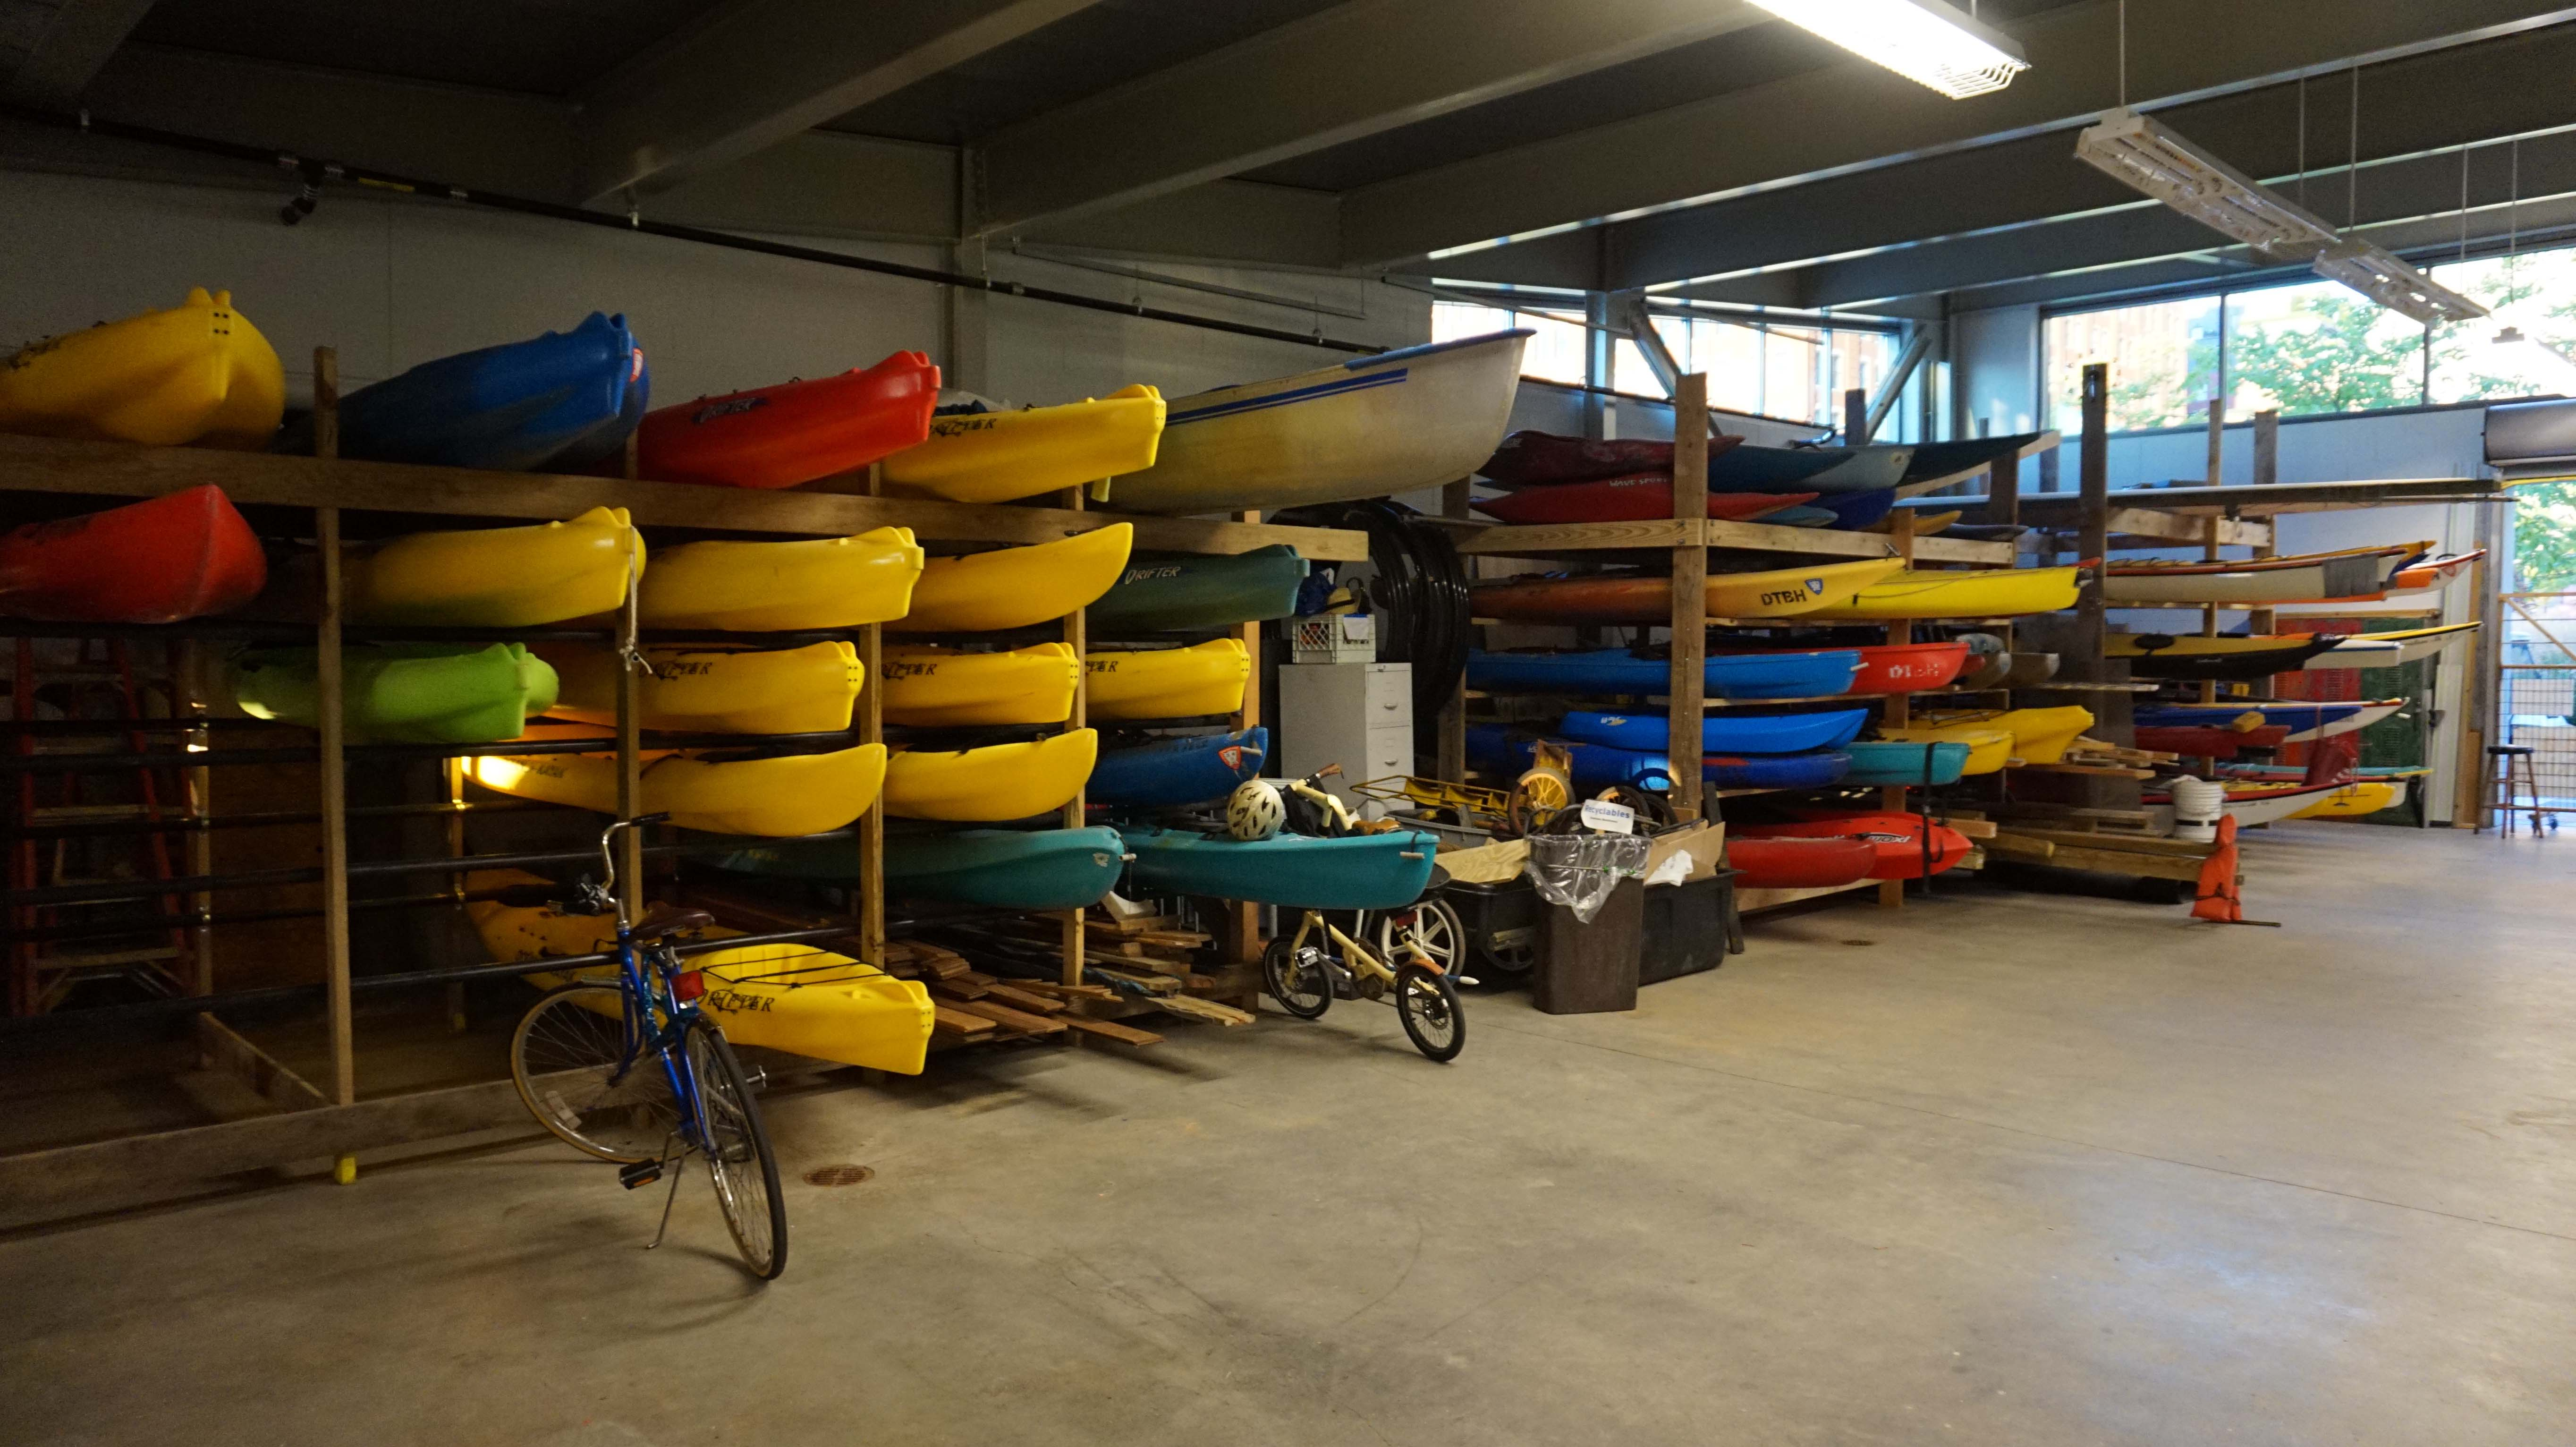 Boat house kayaks on racks